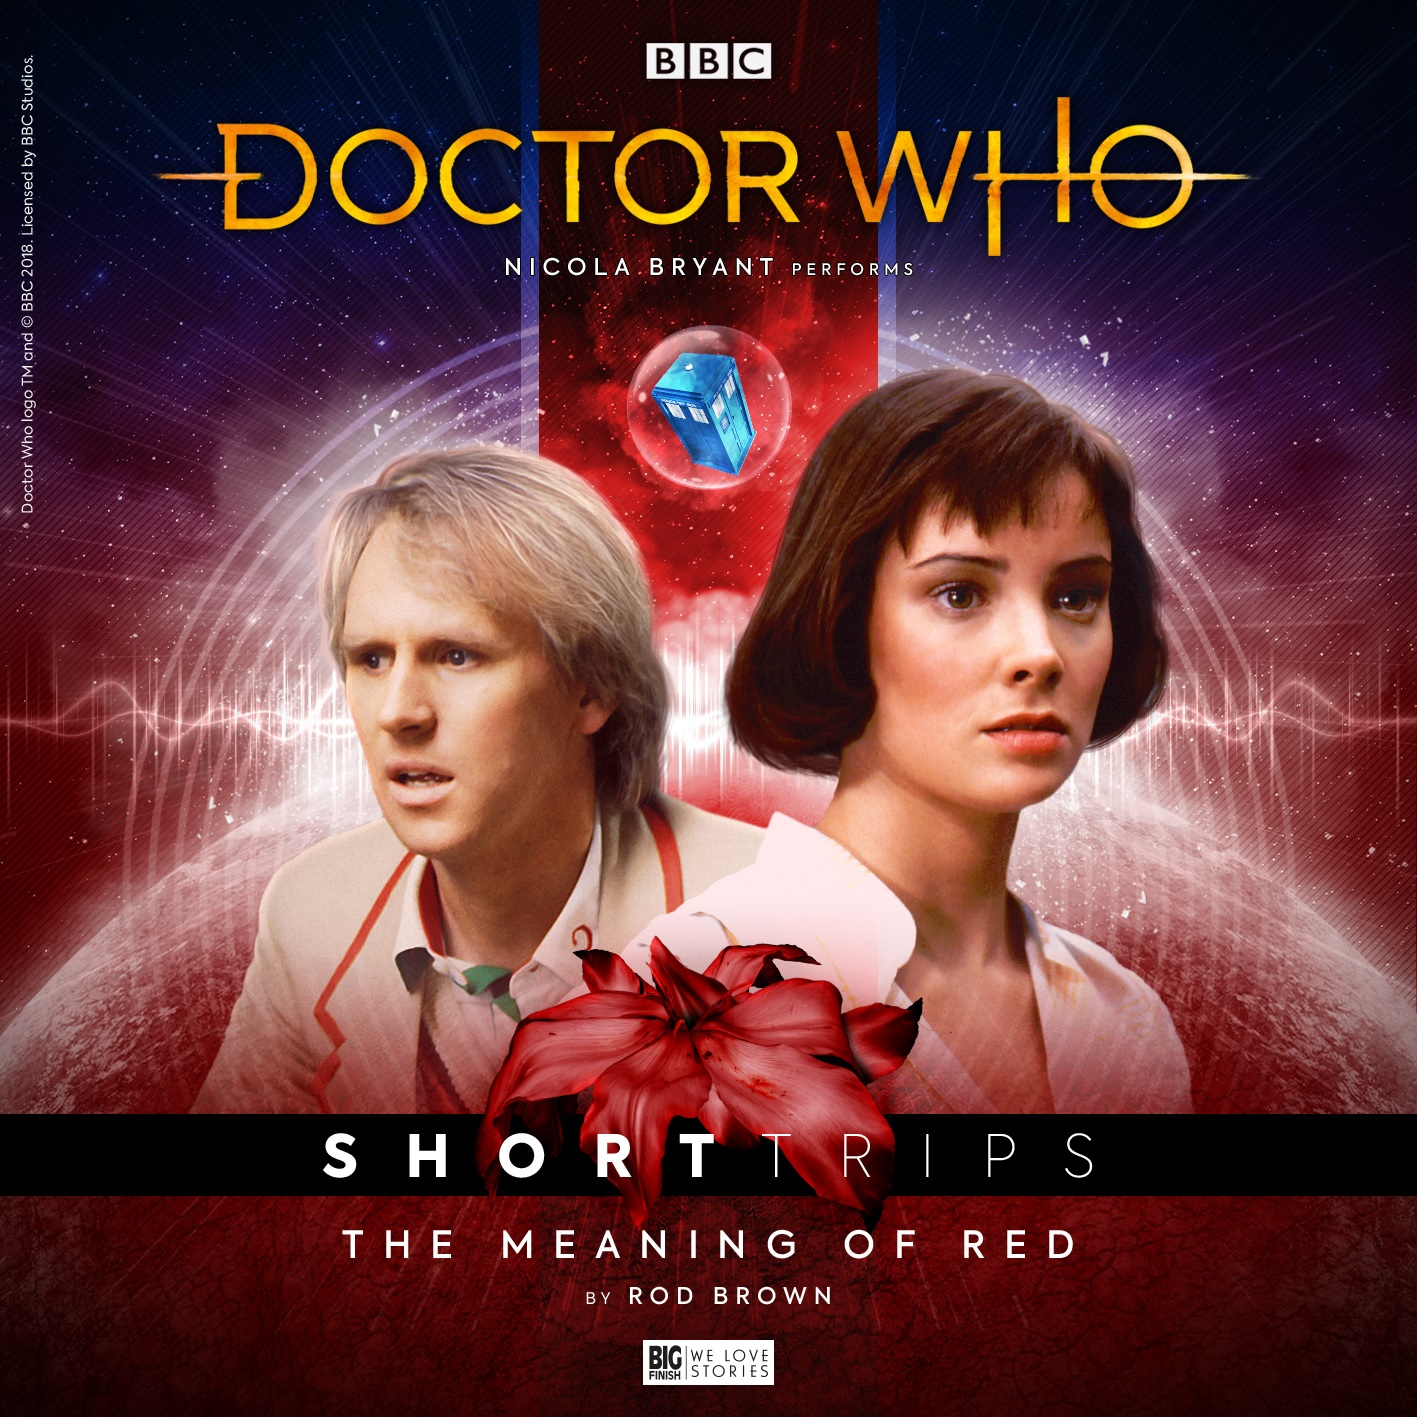 Reviewed: Big Finish's Doctor Who Short Trips – The Meaning of Red